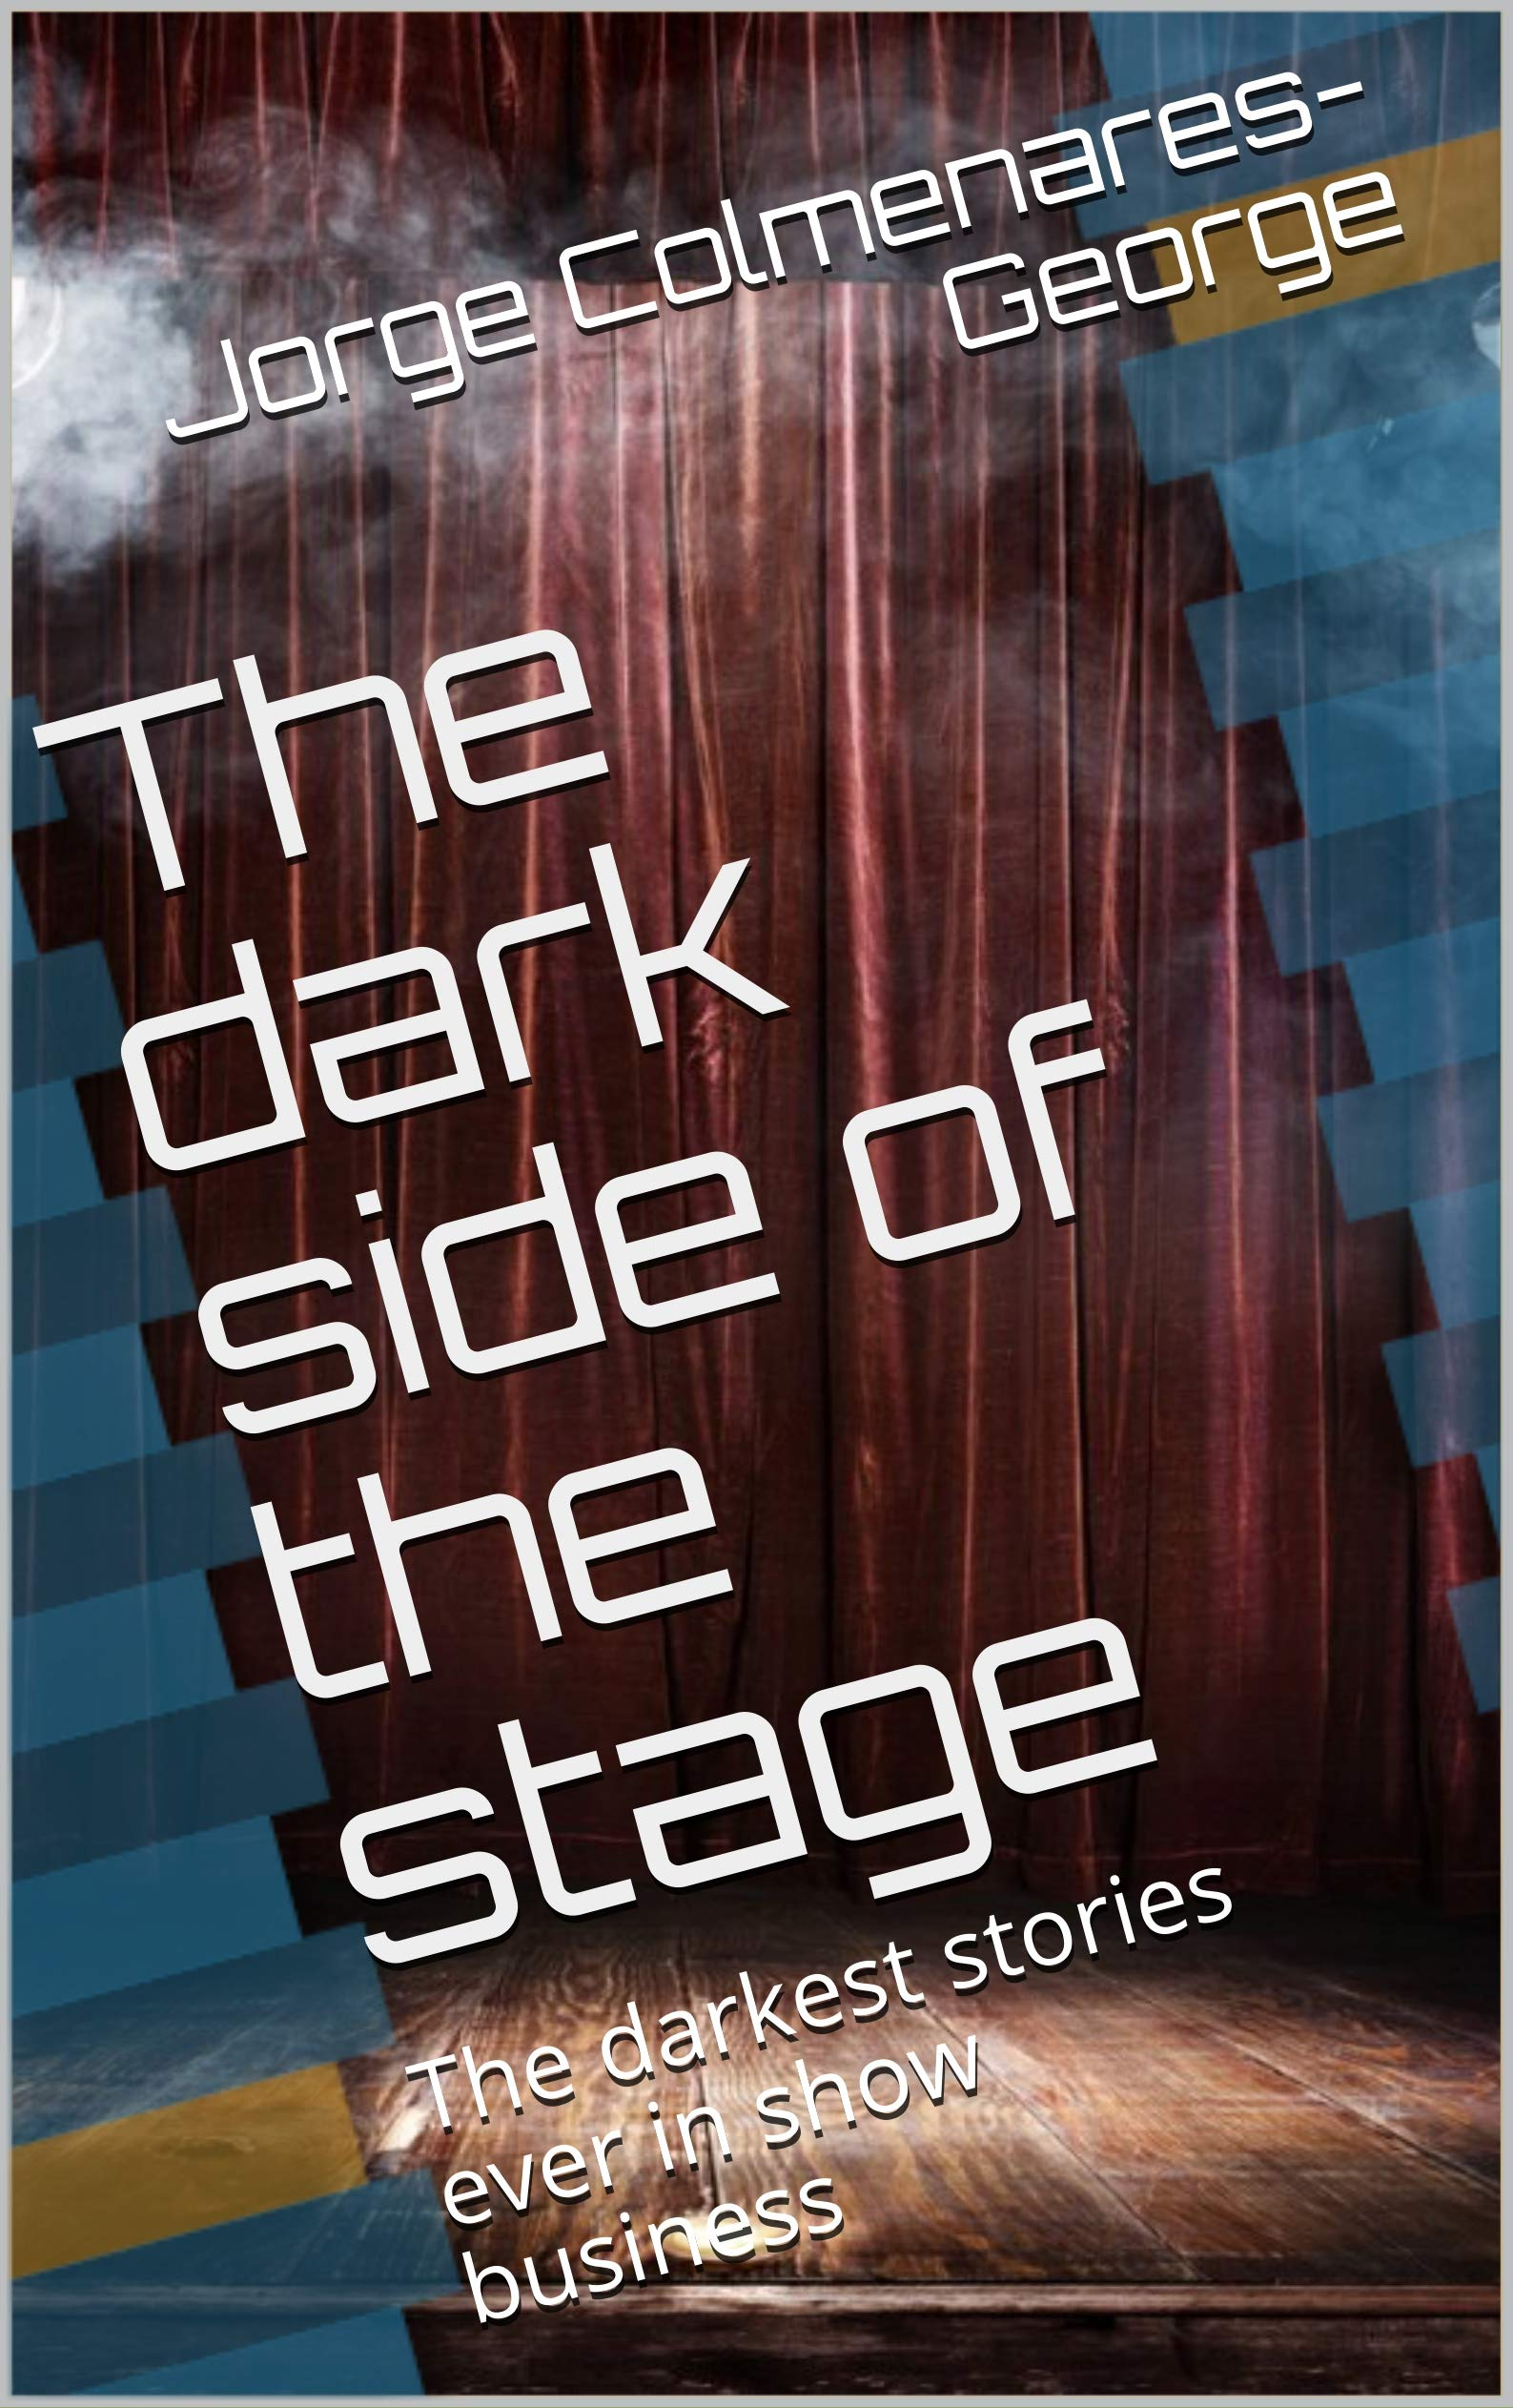 The dark side of the stage: The darkest stories ever in show business